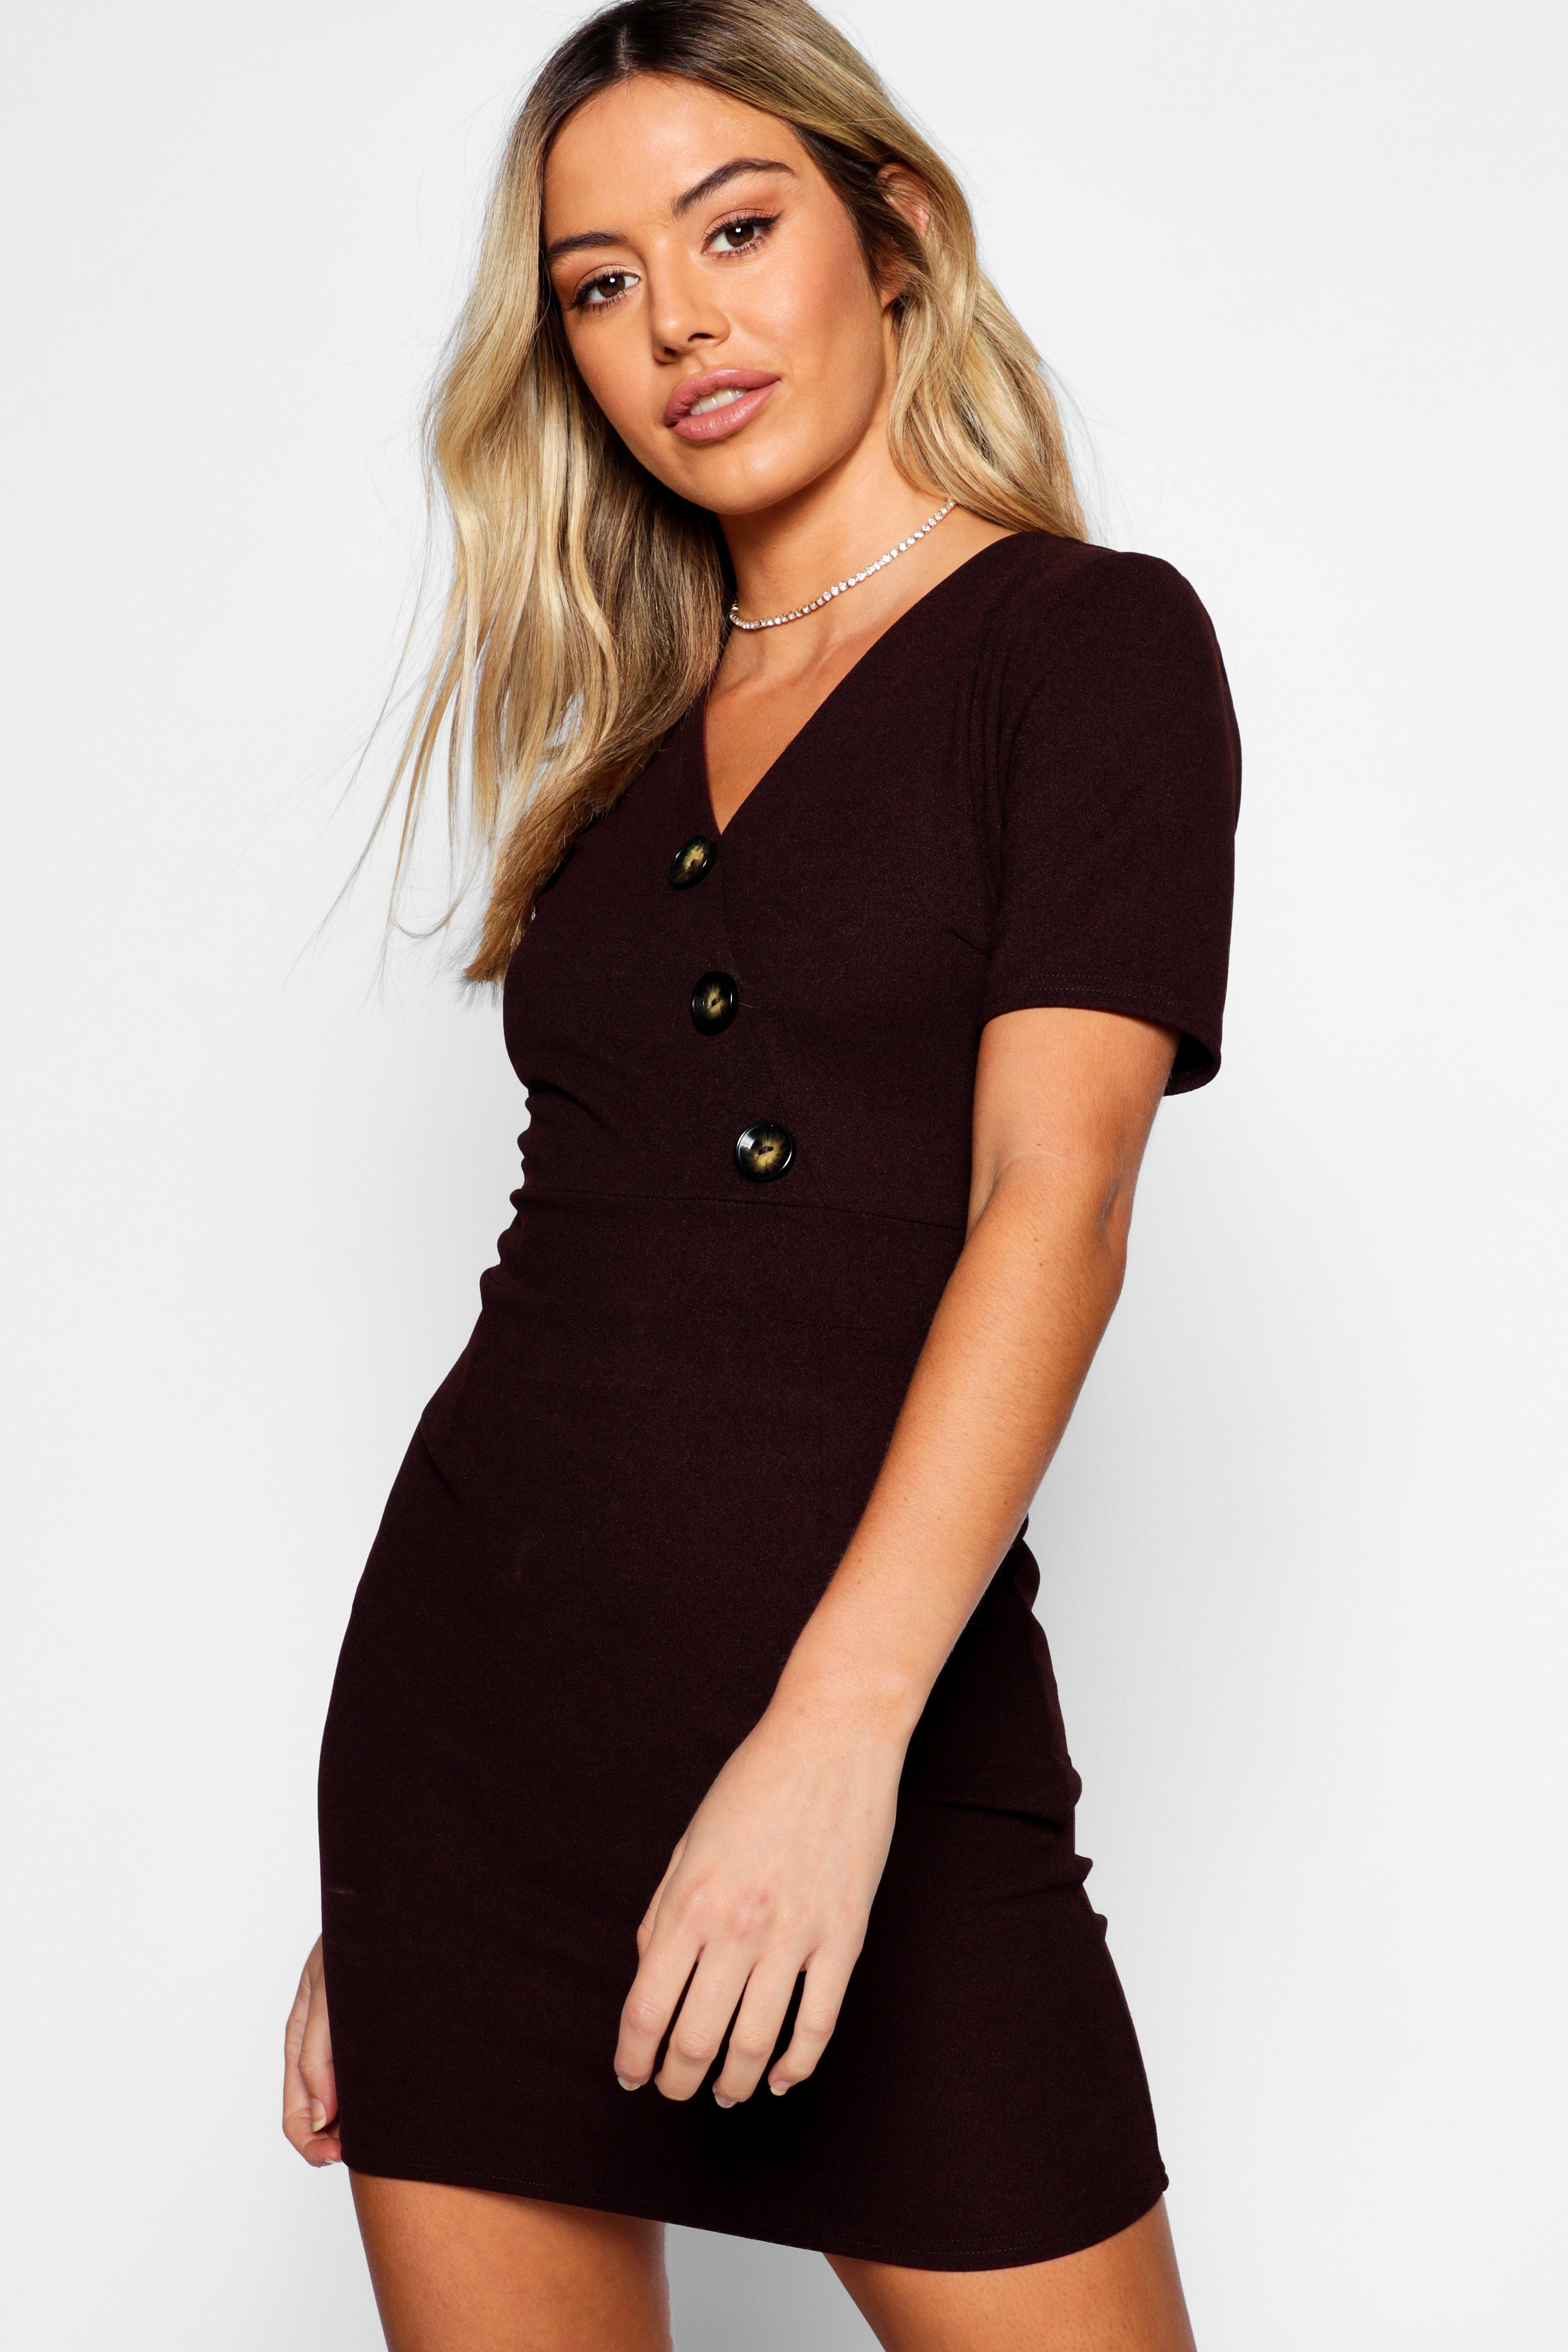 808565f0a5 Boohoo Petite Button Detail V-neck Dress in Brown - Lyst